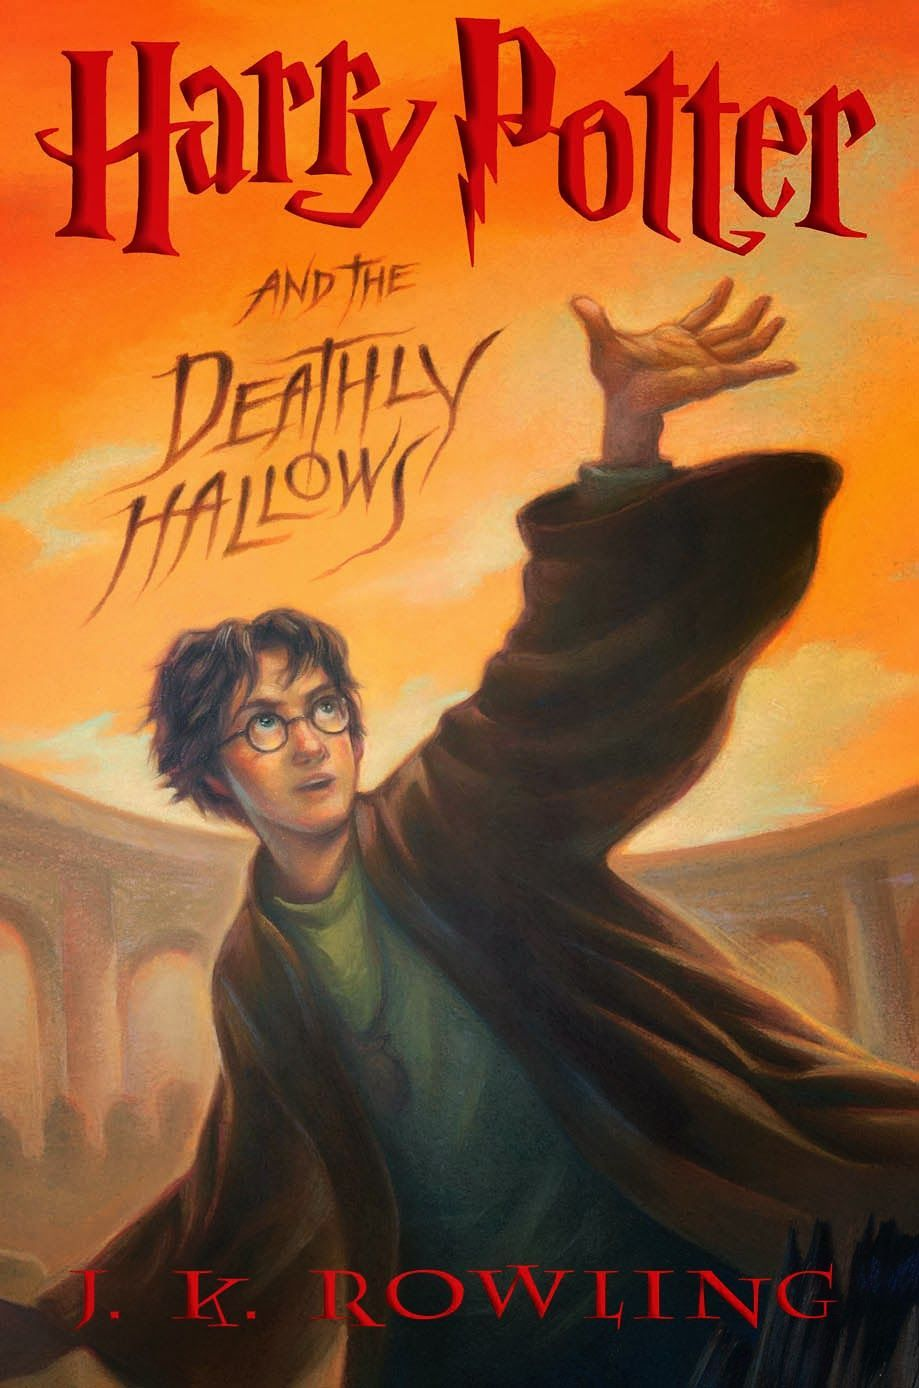 Free Download Pdf Files Harry Potter And The Deathly Hallows Pdf